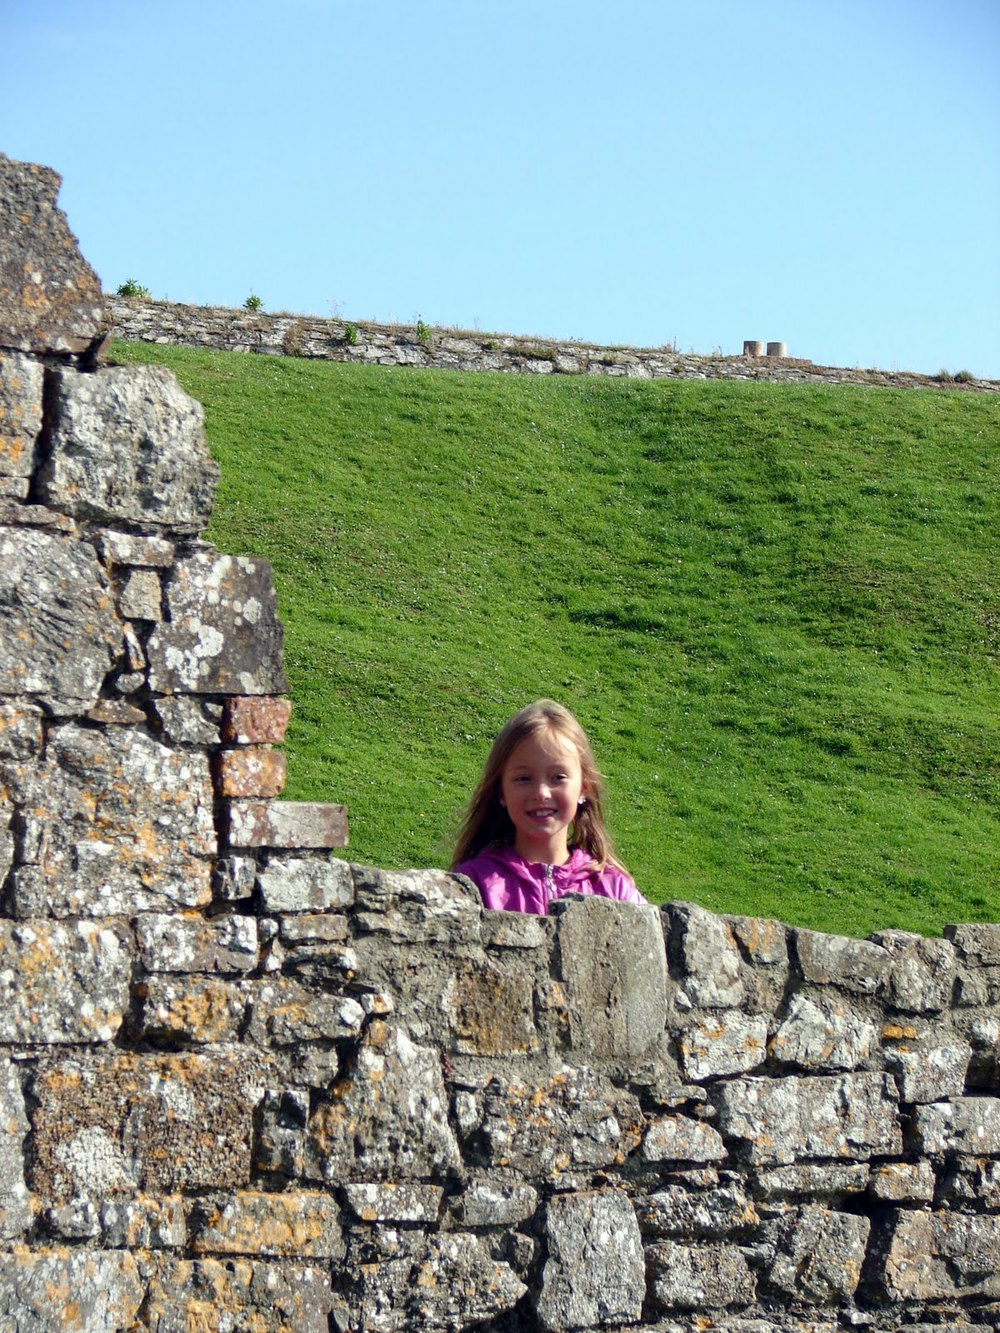 My granddaughter, Erika, on our trip to Ireland. Erika inspired my book Imagination Lost.